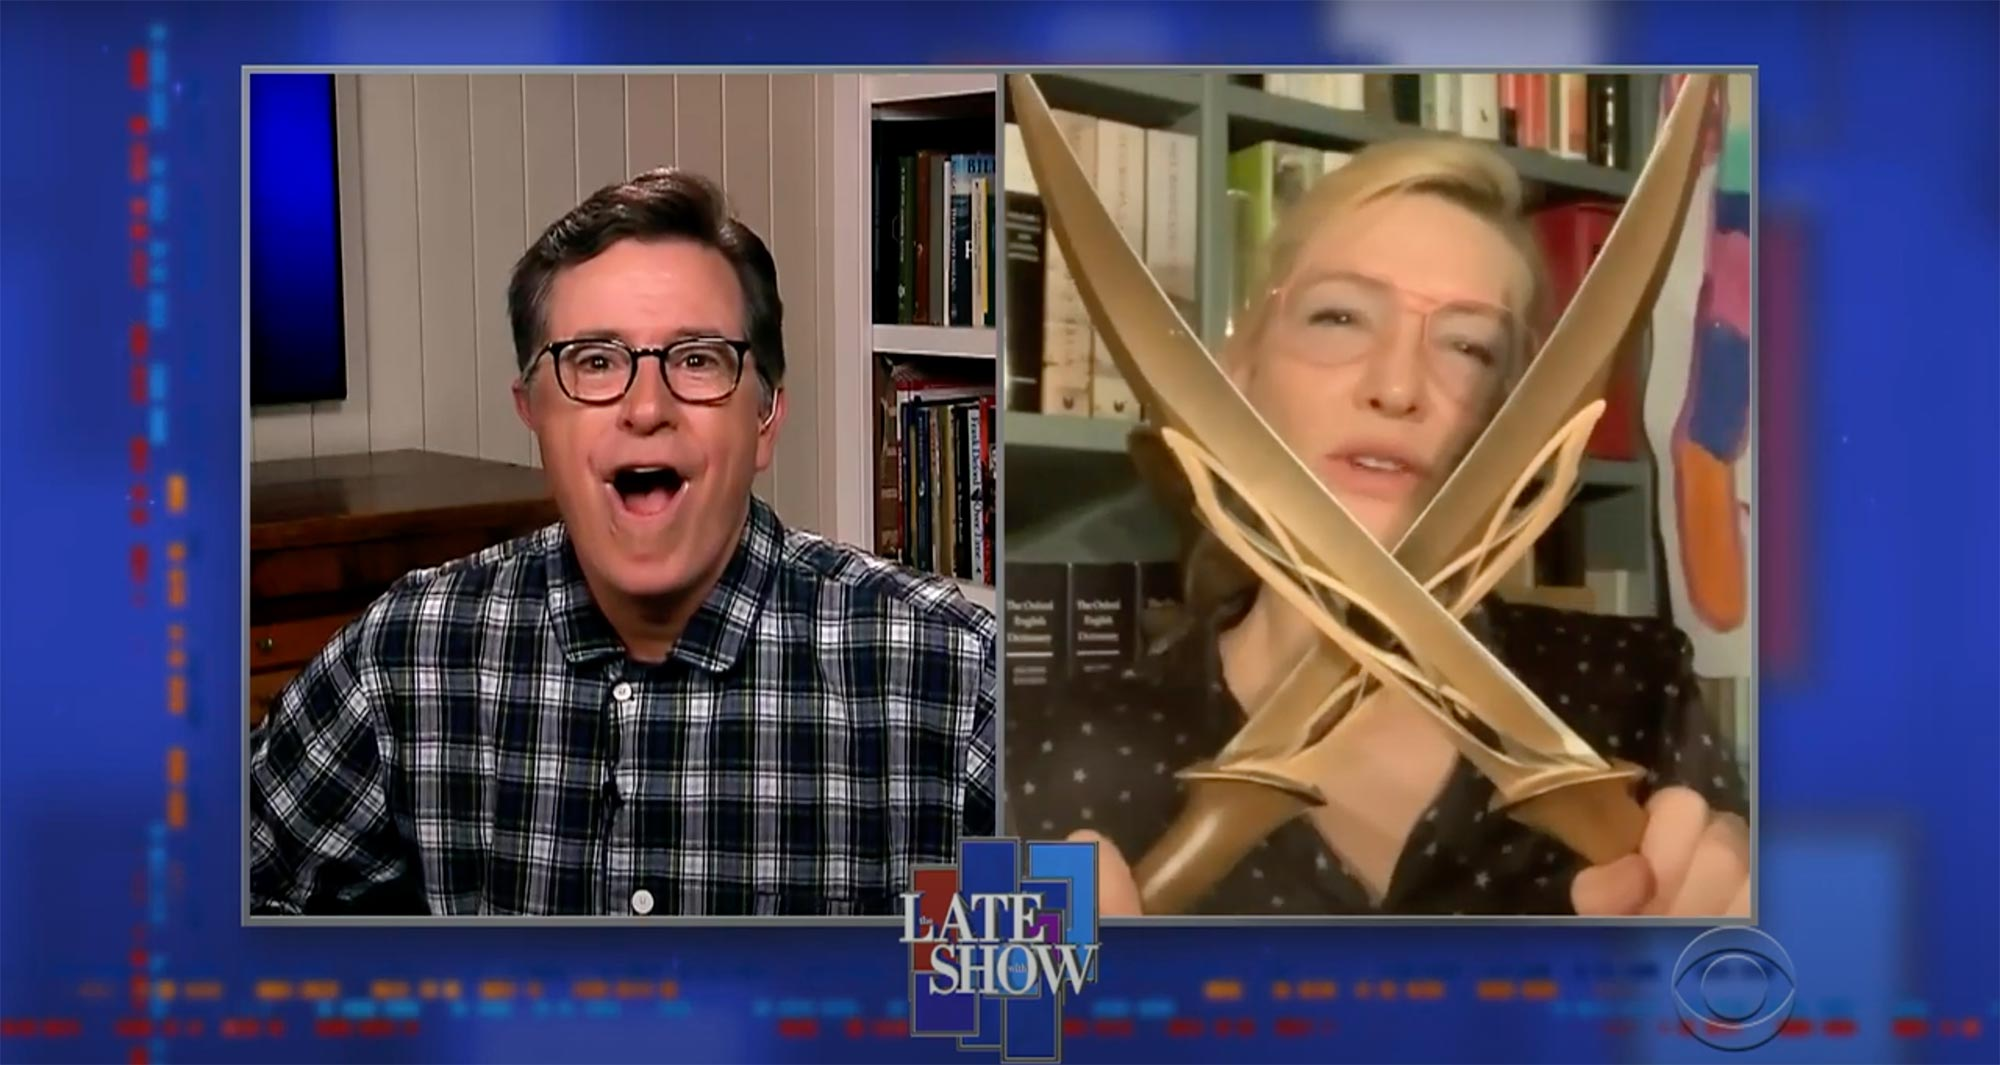 Stephen Changes Into Something More Comfortable To Talk To Cate Blanchett